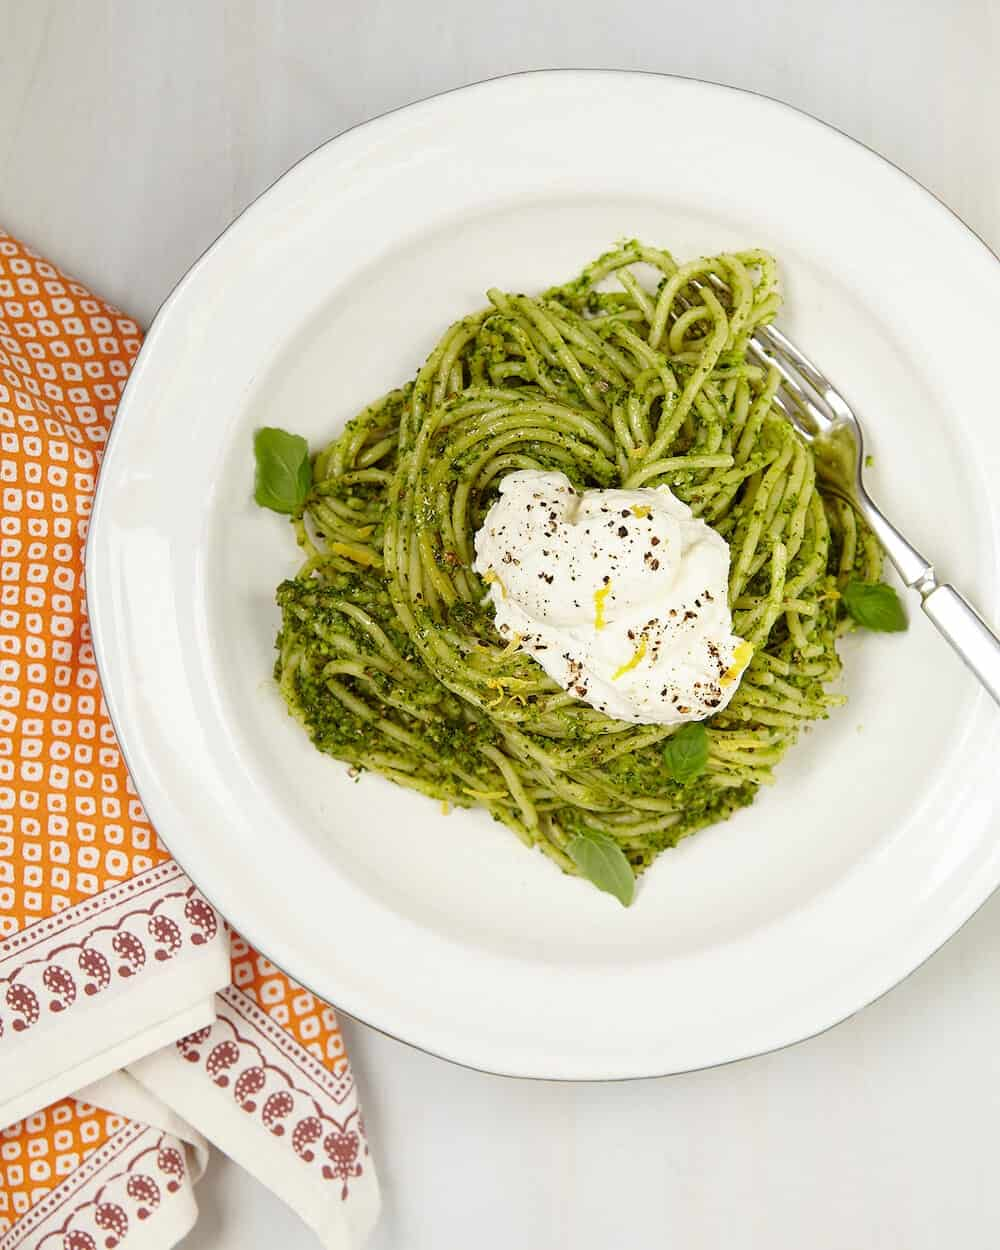 Winter Pesto Spaghetti With Lemon Ricotta - the perfect way to get a fresh taste of summer using winter ingredients during colder months. Citrus, like lemons, add a bright freshness to a sweet and savory cream topping.